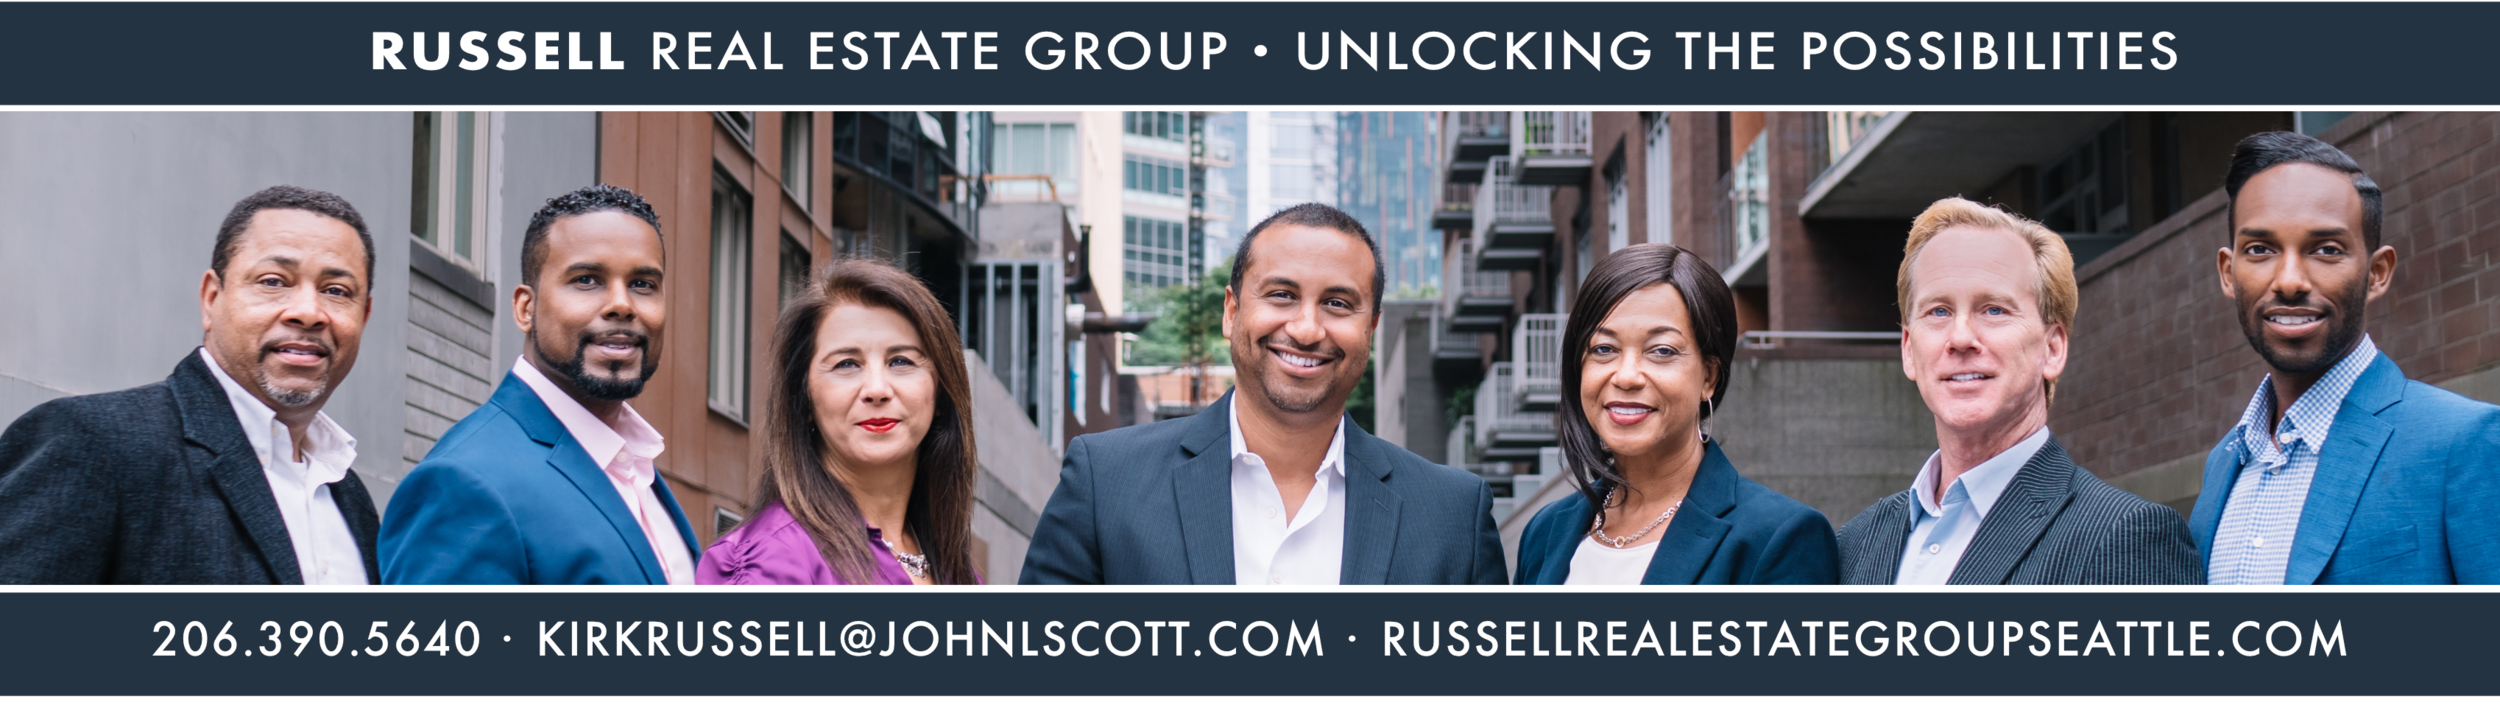 Russell Real Estate Group Seattle, WA